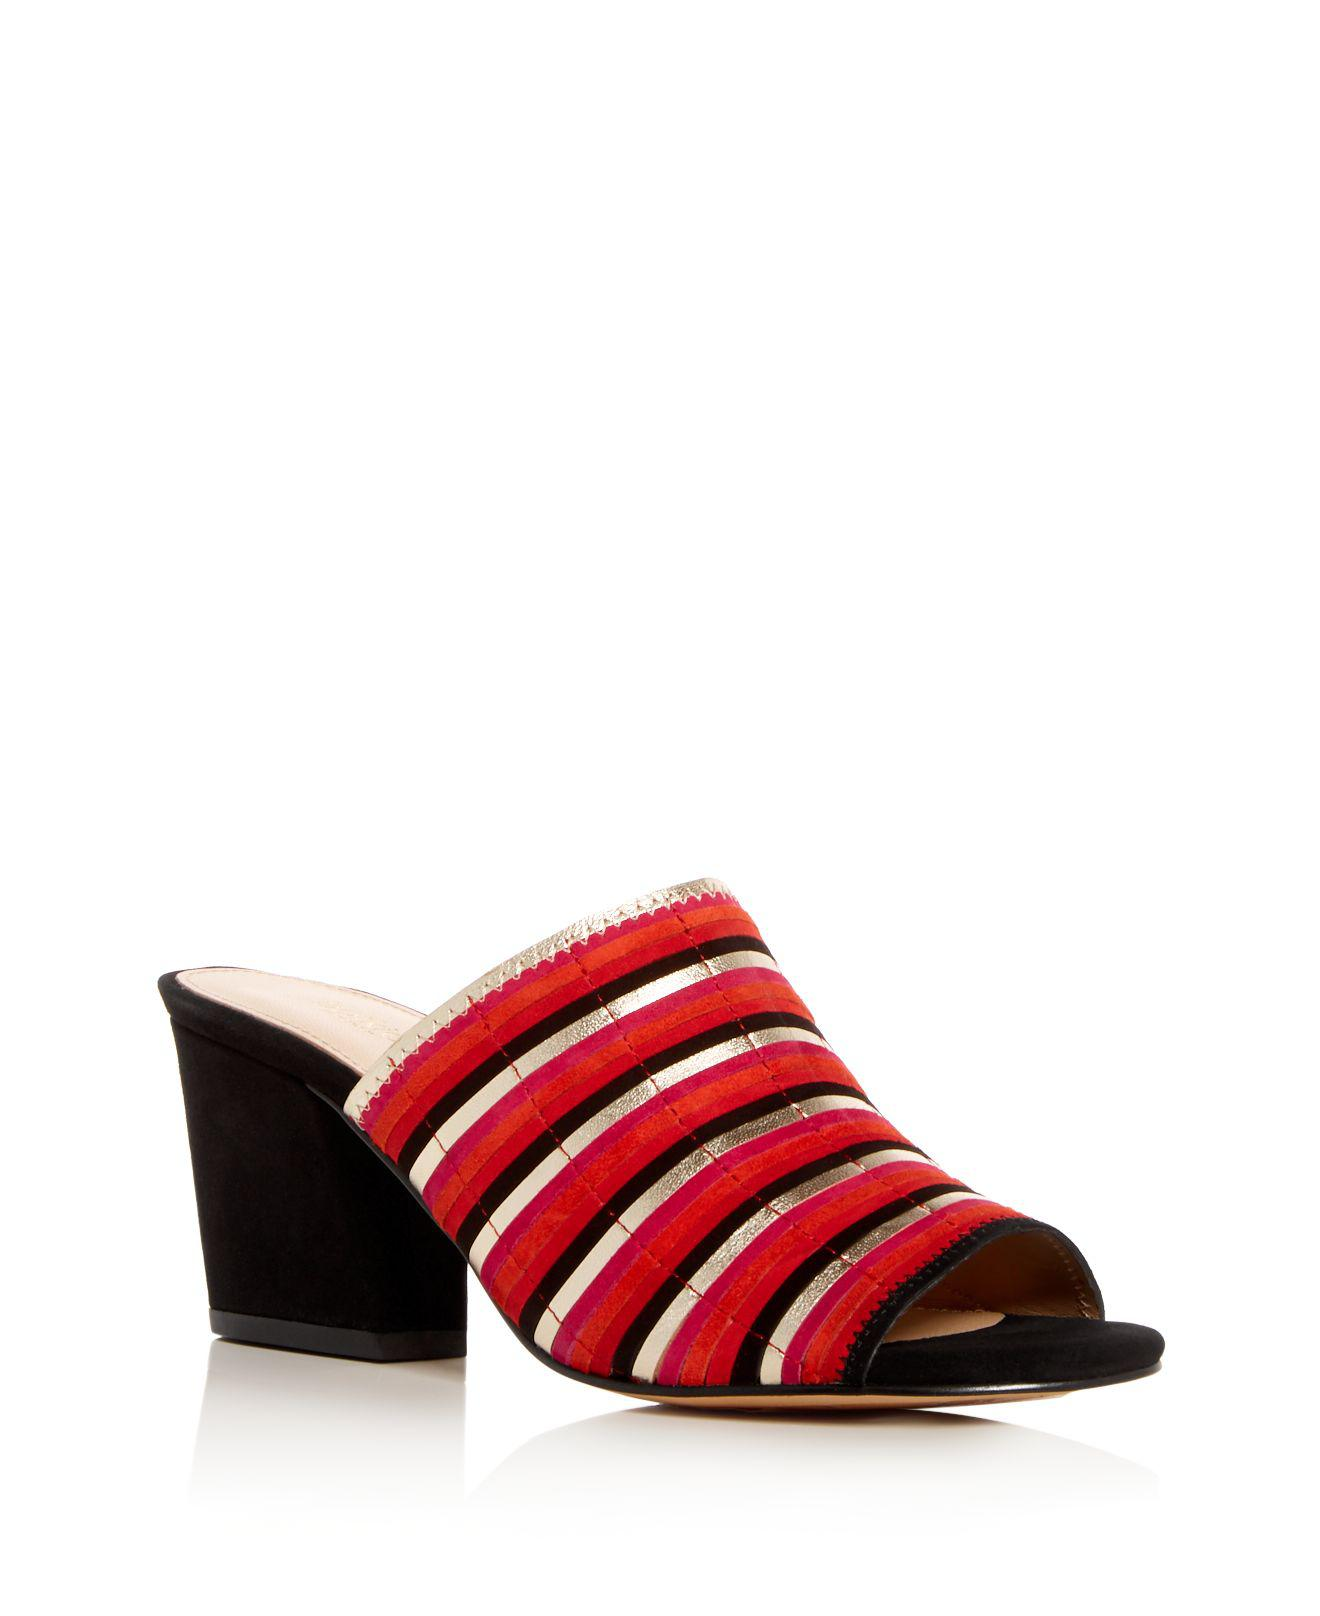 Botkier Women's Posie Suede Stripe High-Heel Slide Sandals I4QGCD